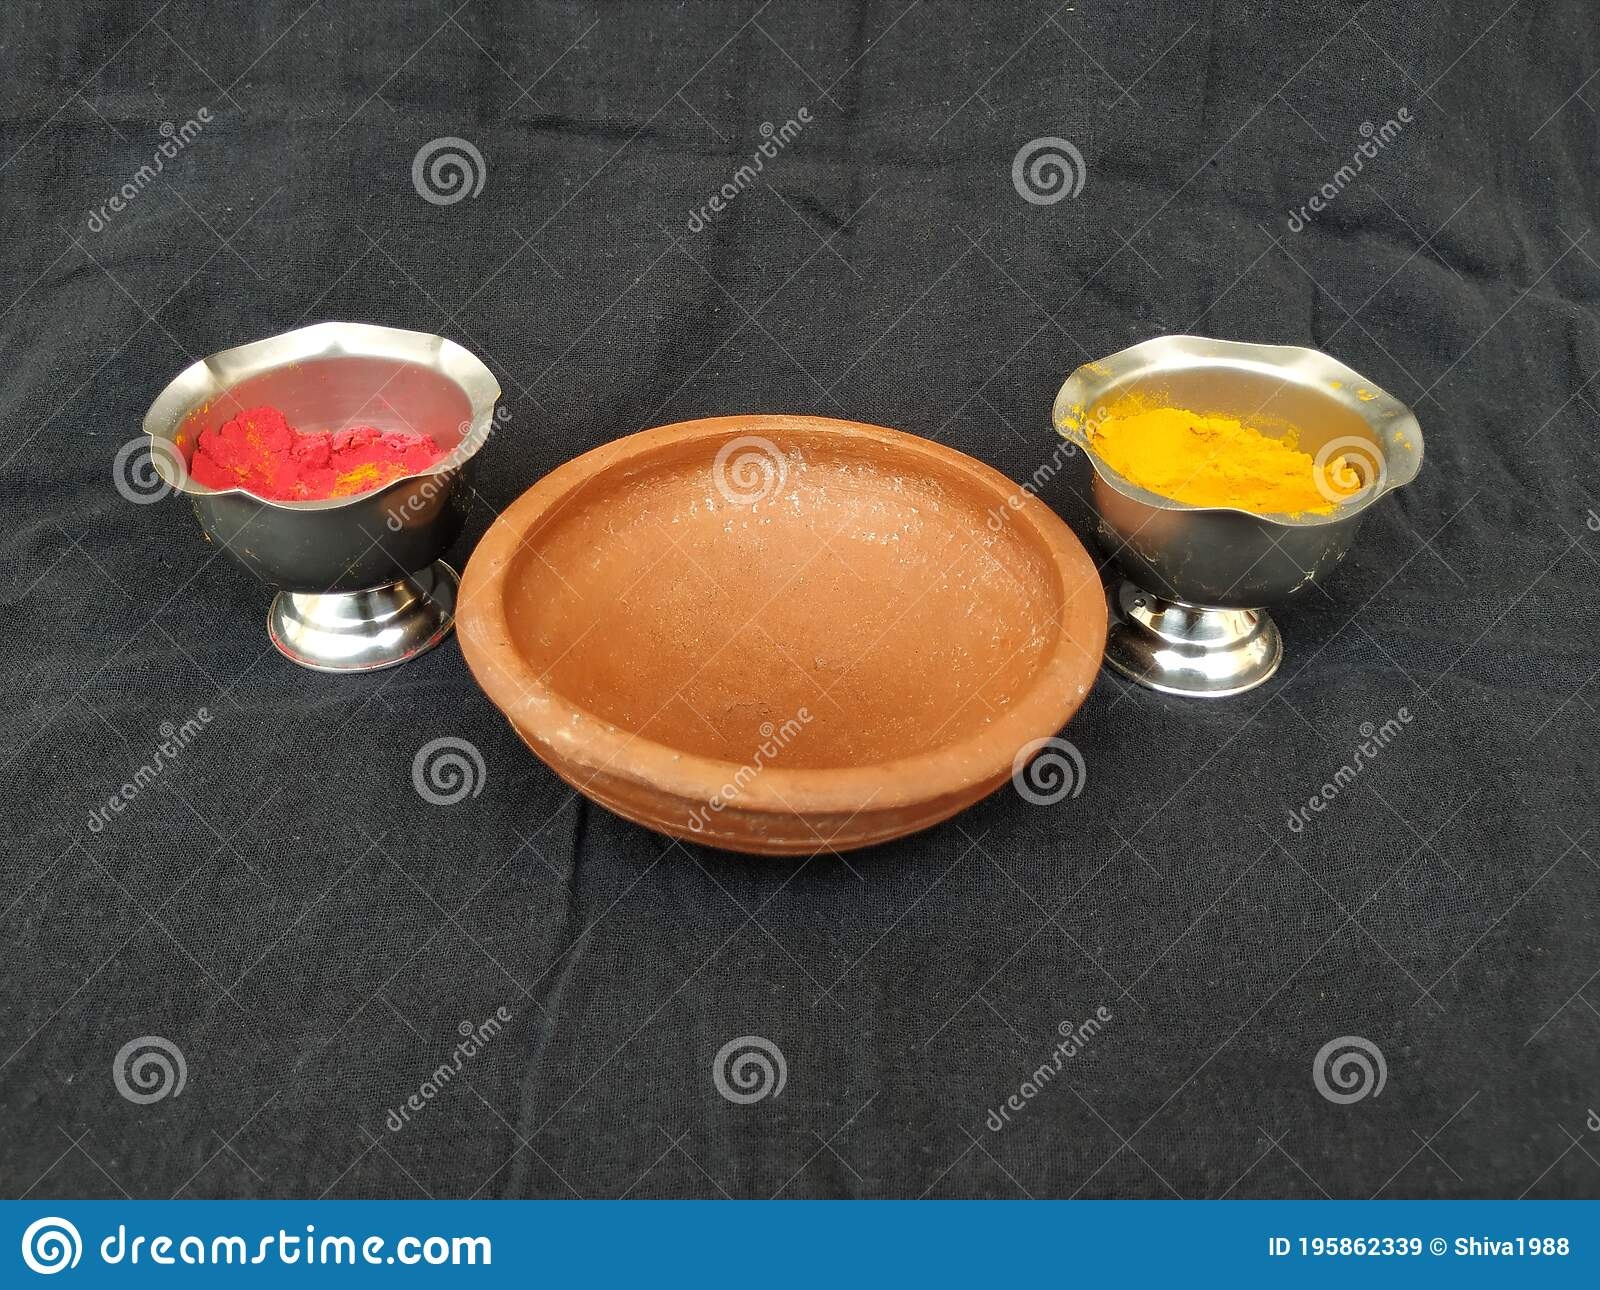 Traditional Man Made Item Sand Saucer Or Bowl Kumkum And Turmeric Powder With Steel Cup Isolated On Black Background Stock Image Image Of Background Cuisine 195862339